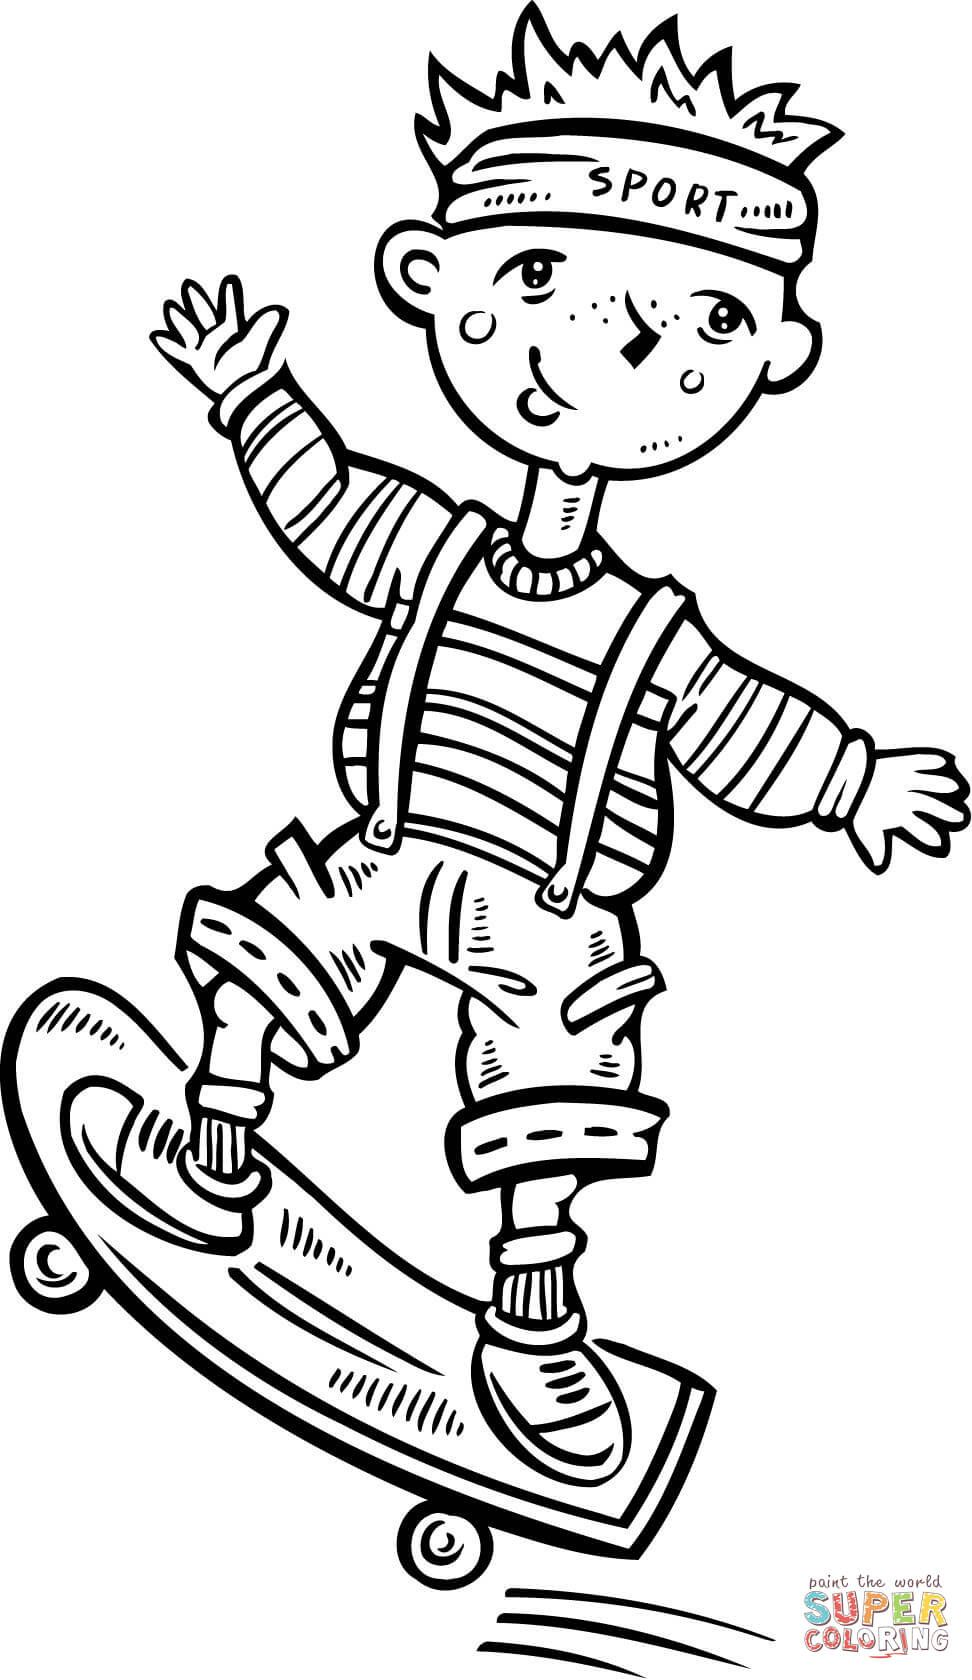 Child Riding a Skateboard coloring page Free Printable